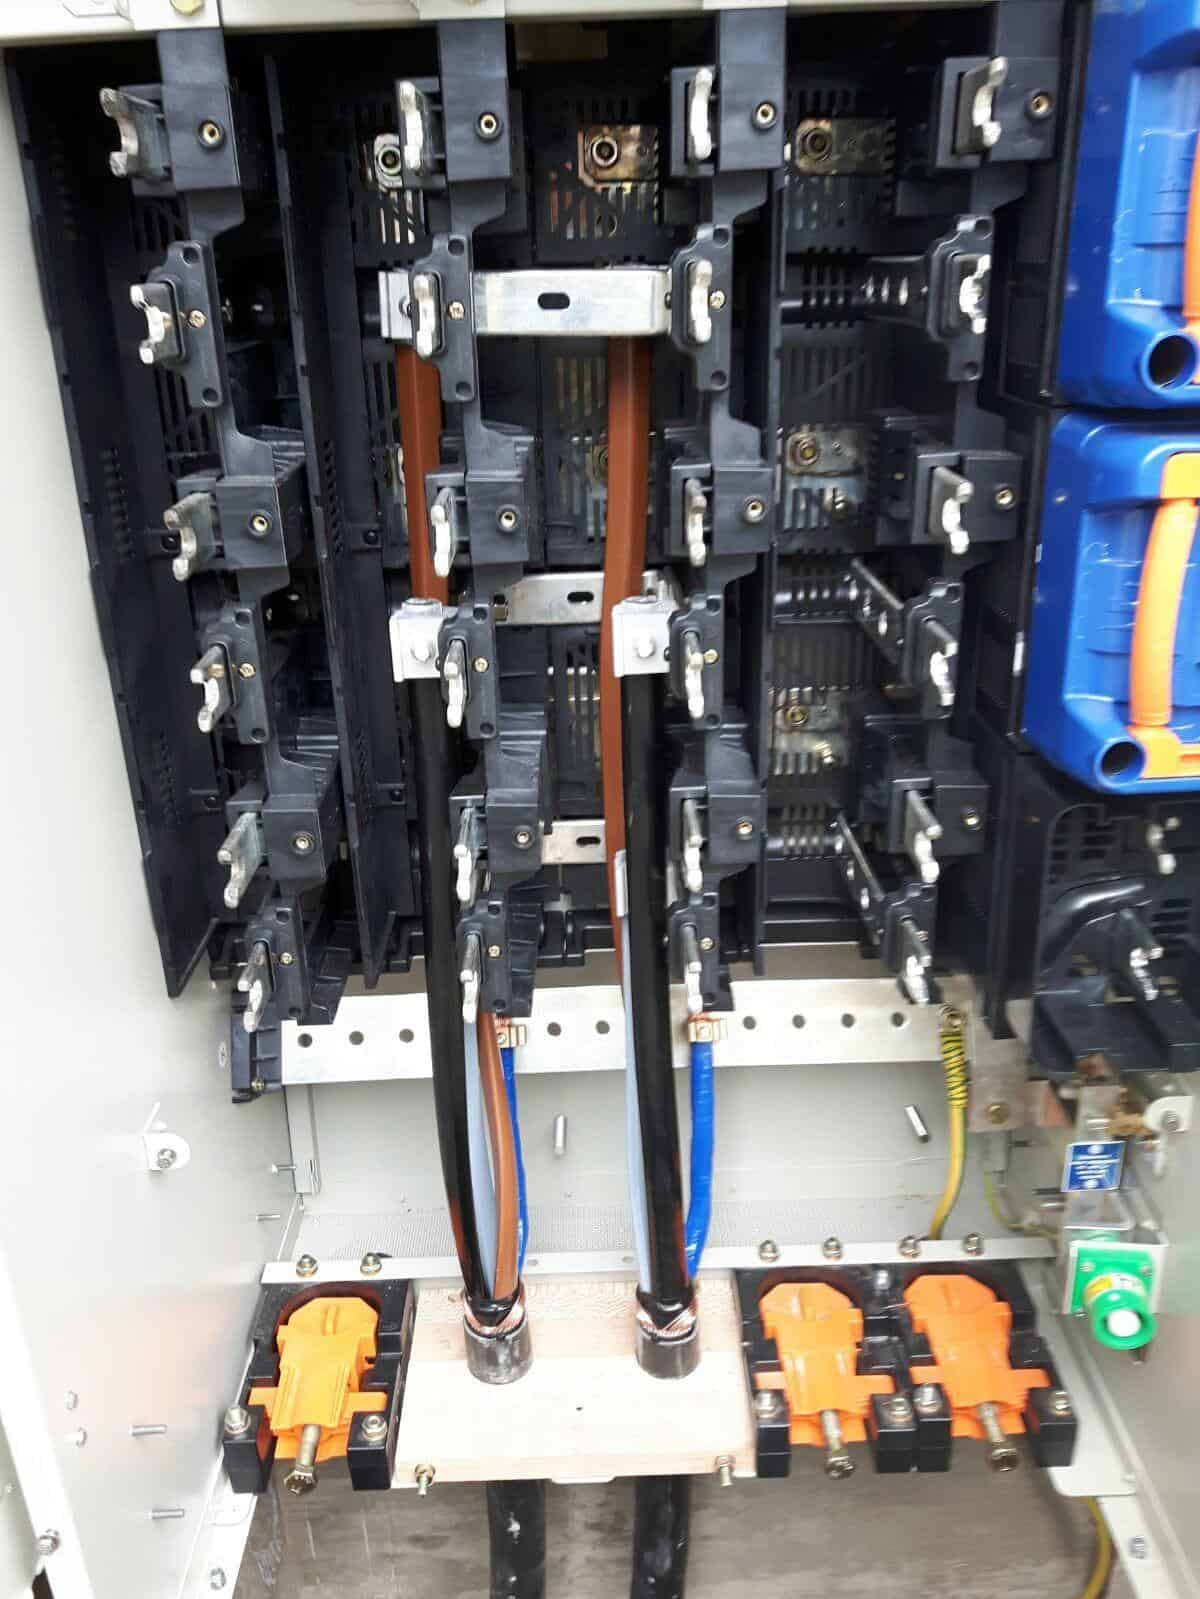 Waveform Cable Termination - 3 Core 300sqmm Cable Onto A 2 Ganged Metered Way In Lucy LV Cabinet